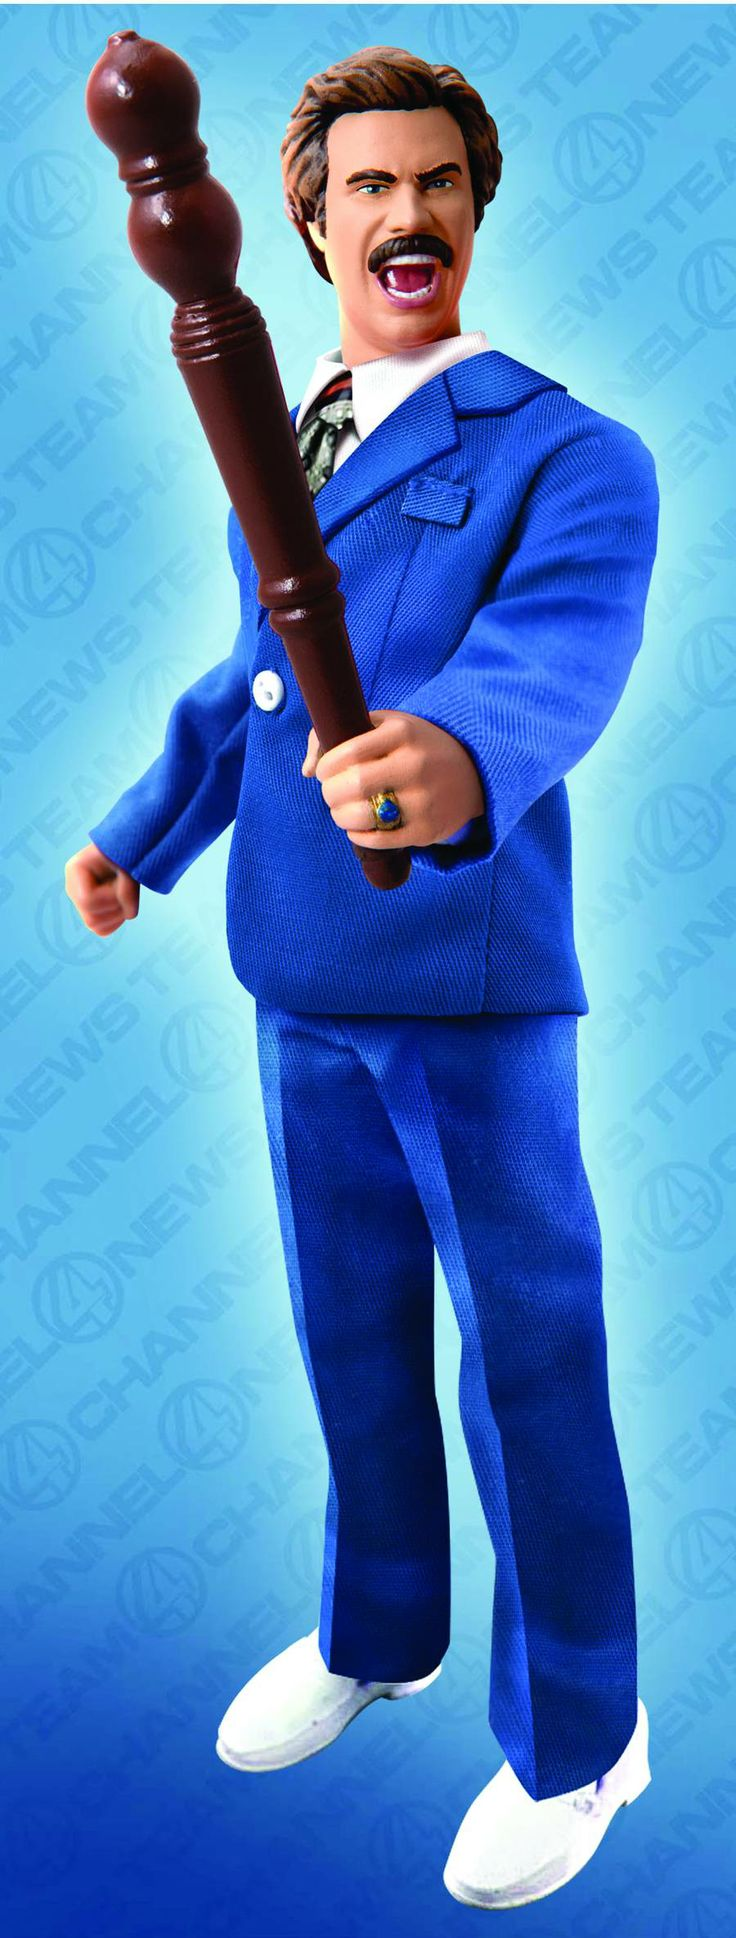 Anchorman 8-Inch Battle Ready Ron Burgundy Figure [FEB142146]  Here's a classy, Retro-Style 8-inch action figure depicting San Diego's Channel 4 News Team leader, Ron Burgundy!   http://www.supercollectible.com/anchorman-8-inch-battle-ready-ron-burgundy-figure-feb142146/